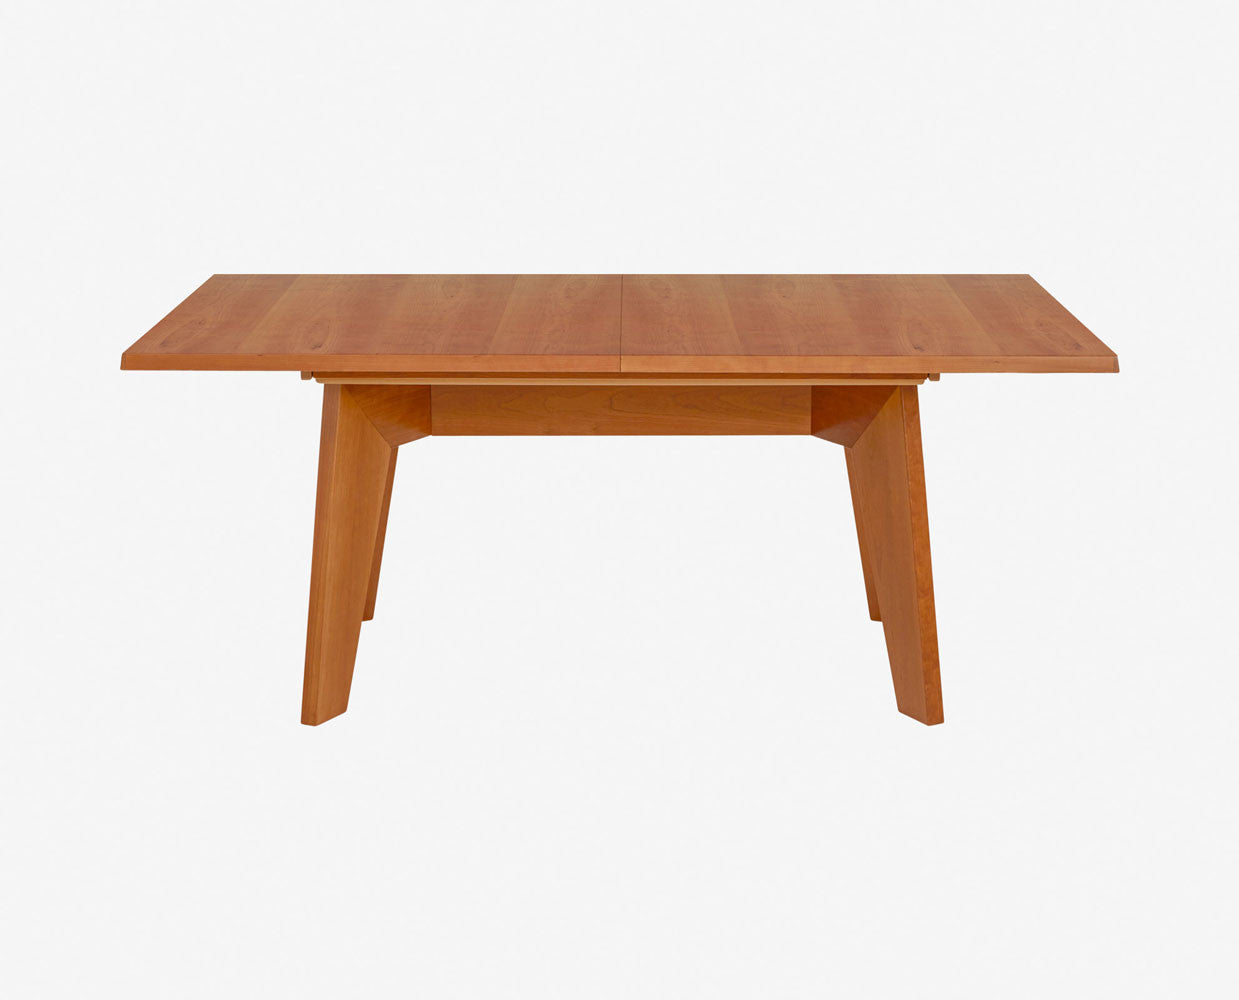 Randers Rectangular Extension Table - Light Cherry